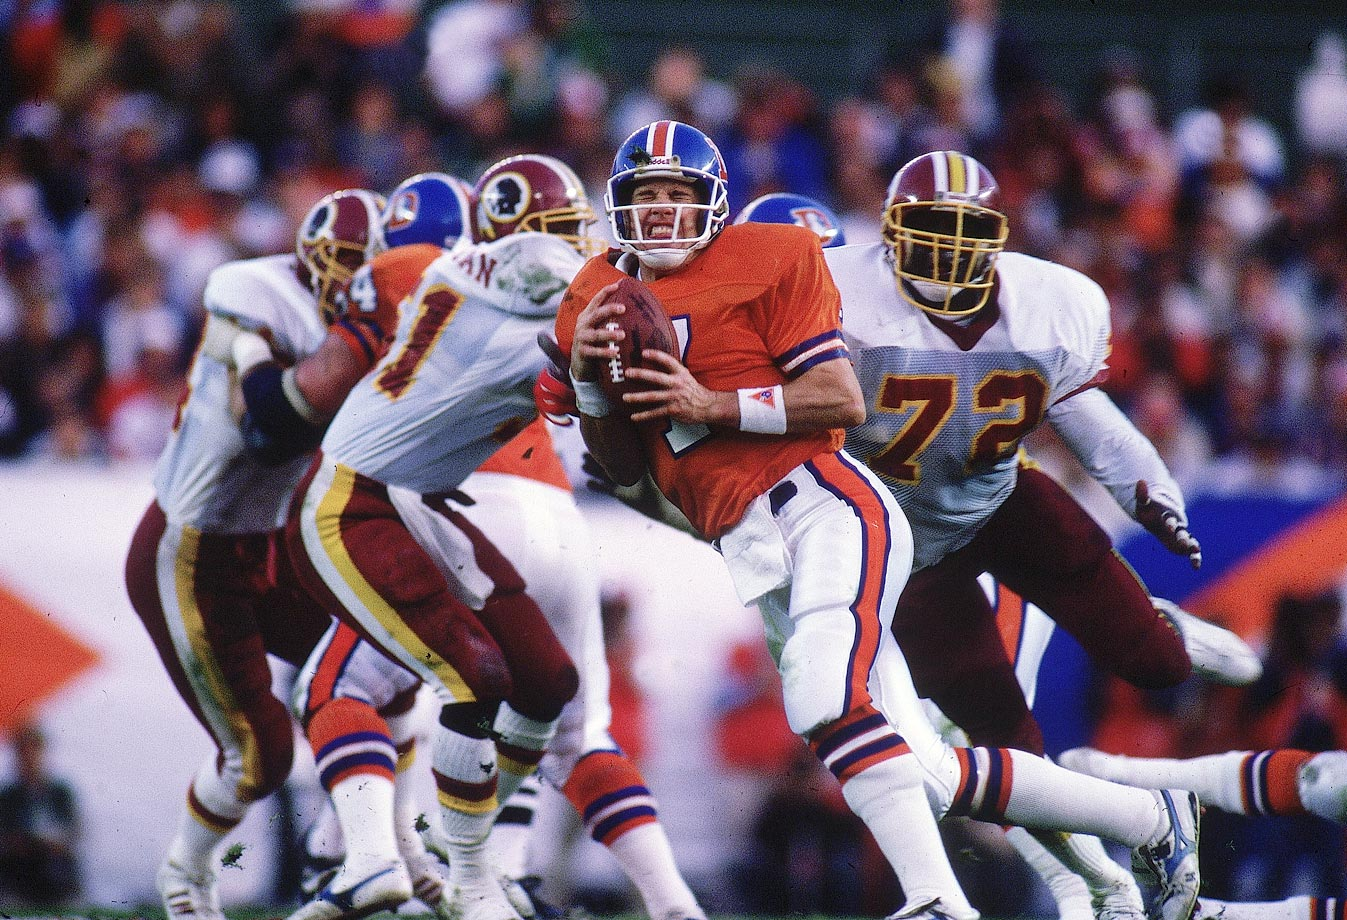 Dexter Manley (72) and the Redskins combined to sack John Elway five times and intercept him three times.